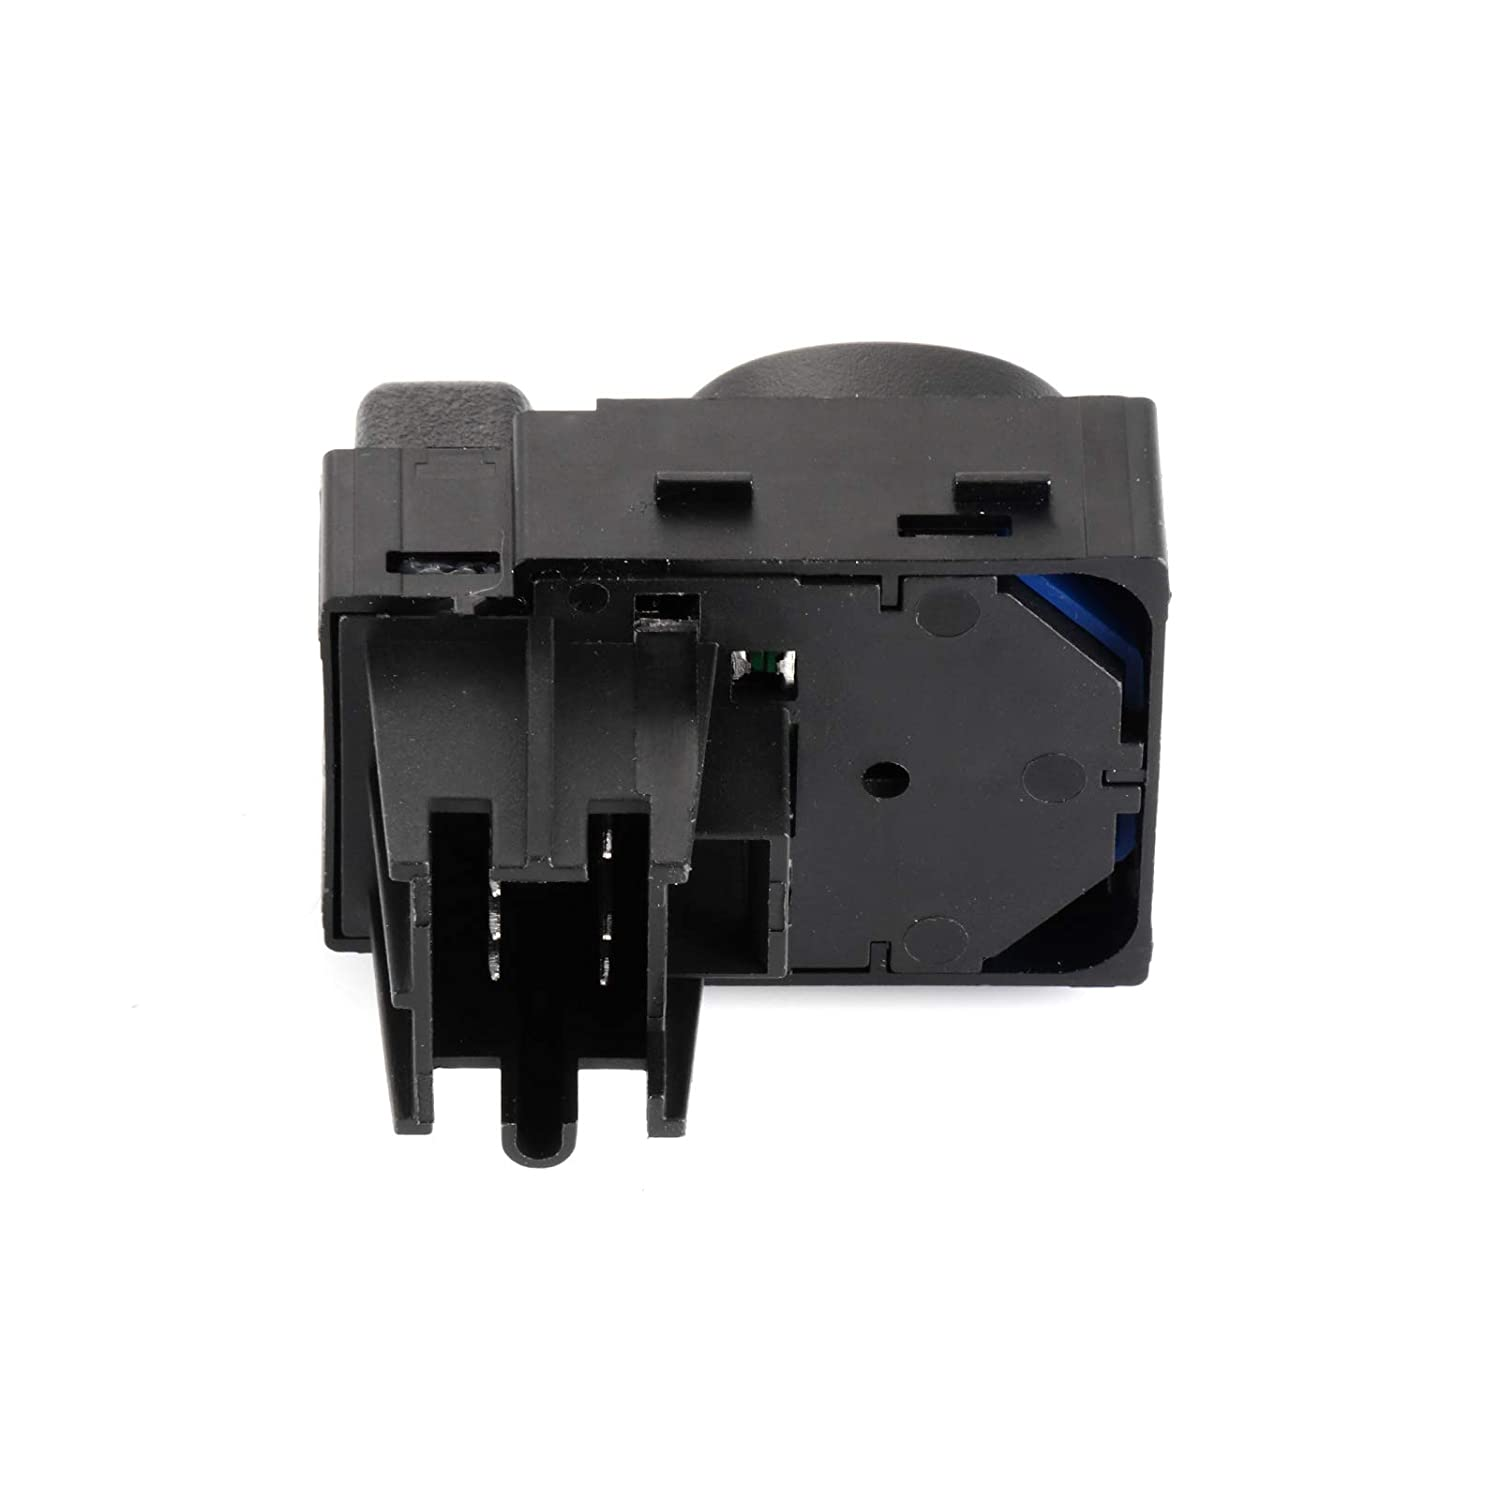 Power Mirror Switch Front Left fits for 2000-2005 Chevrolet Impala 2000-2005 Chevrolet Monte 10283839